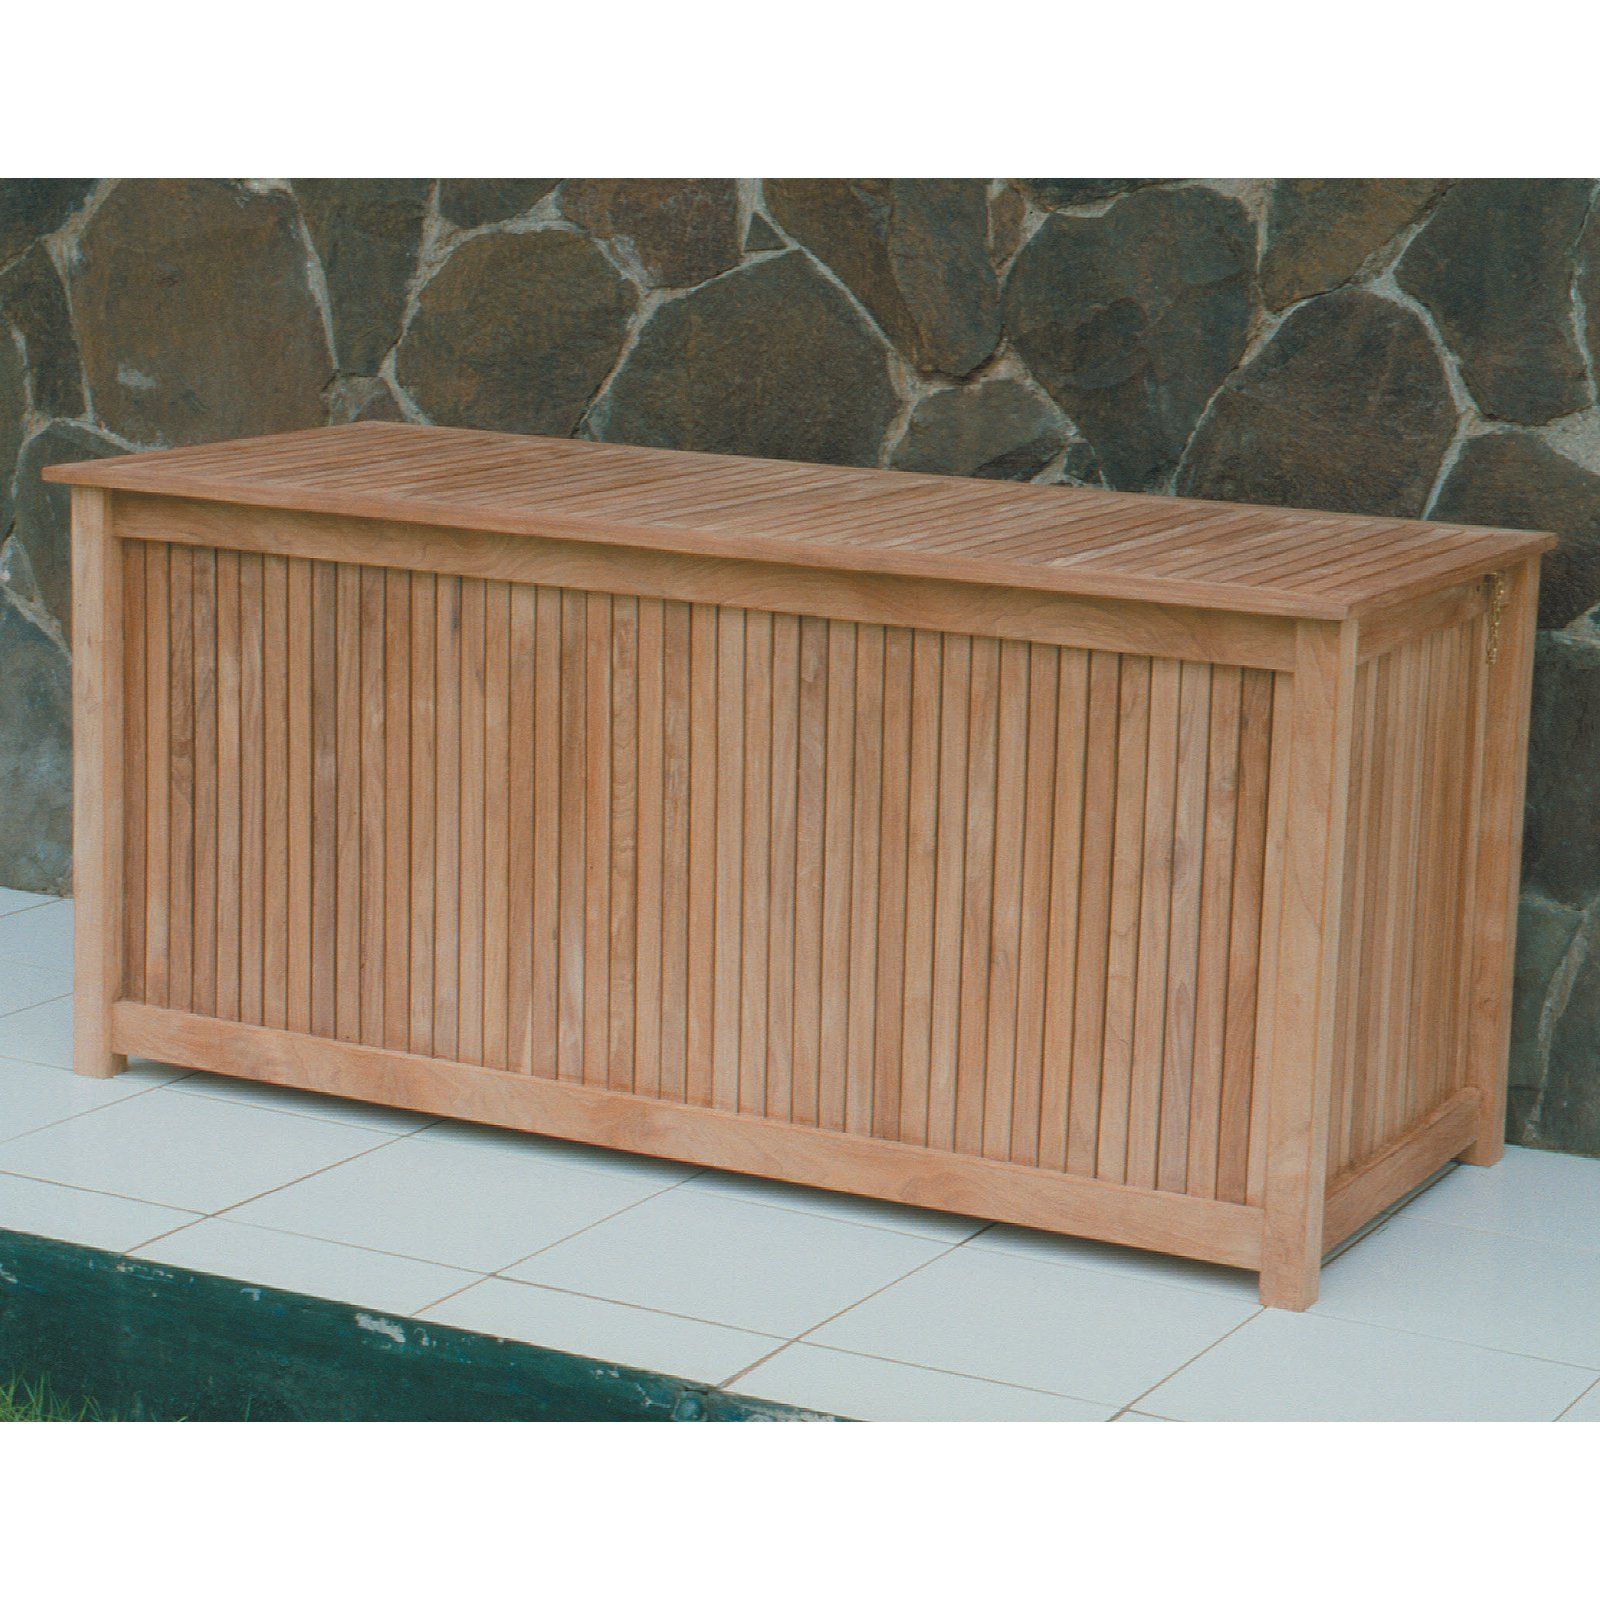 Storage Deck Box   Patios And Pool Decks Tend To Get Cluttered. Luckily,  The Royal Teak 53 In. Storage Deck Box Is Here To Help You Get Organized. Part 98